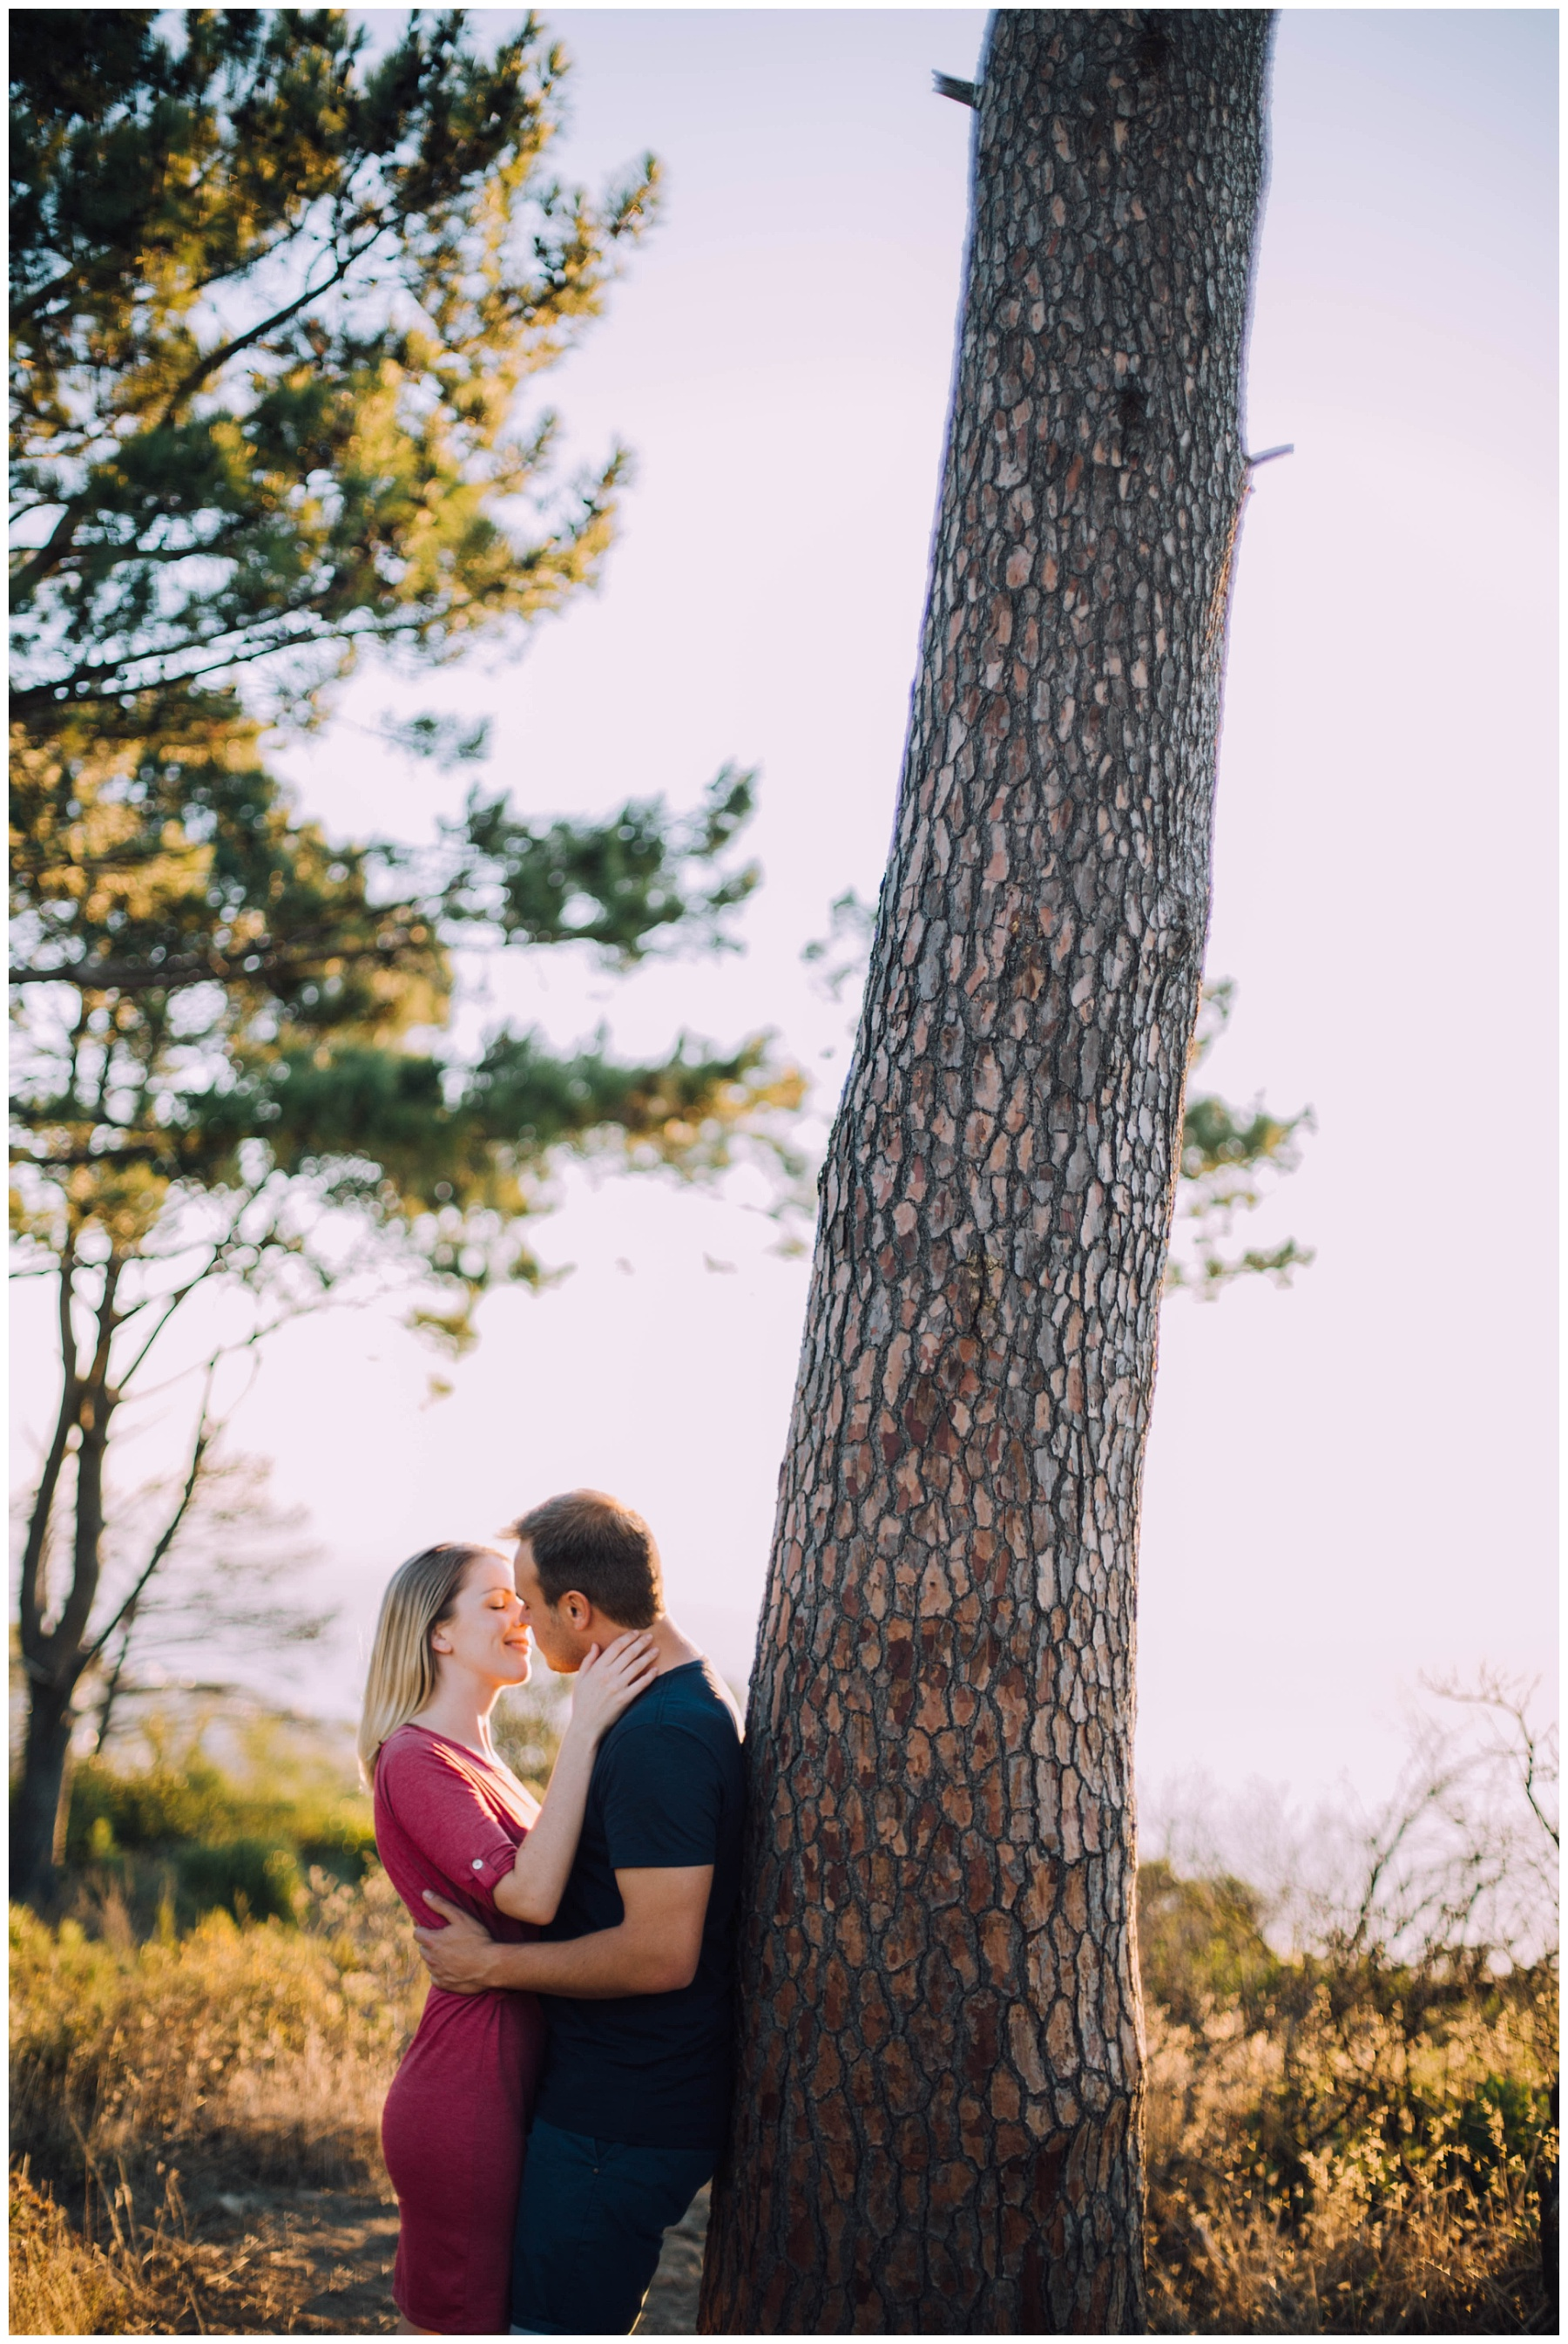 Ronel Kruger Cape Town Wedding and Lifestyle Photographer_2125.jpg